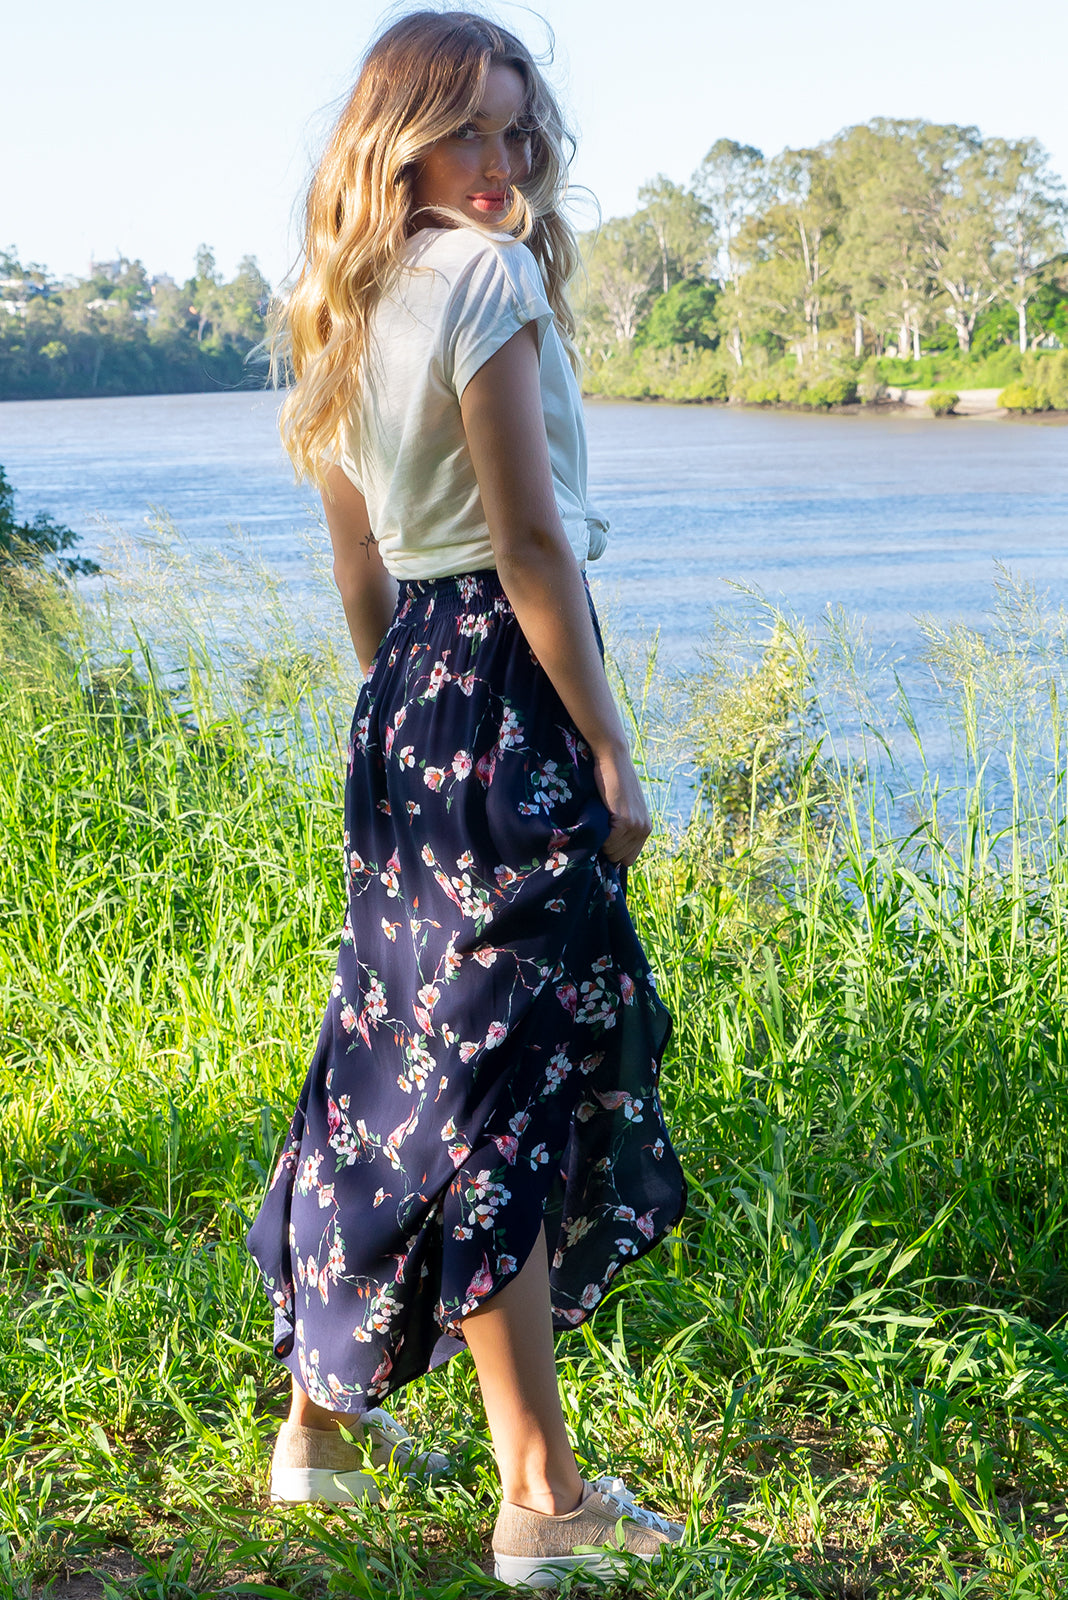 Sails Navy Floral Maxi Skirt with a soft ruched elastic back and pockets in a gorgeous dark inky navy delicate floral print on rayon fabric